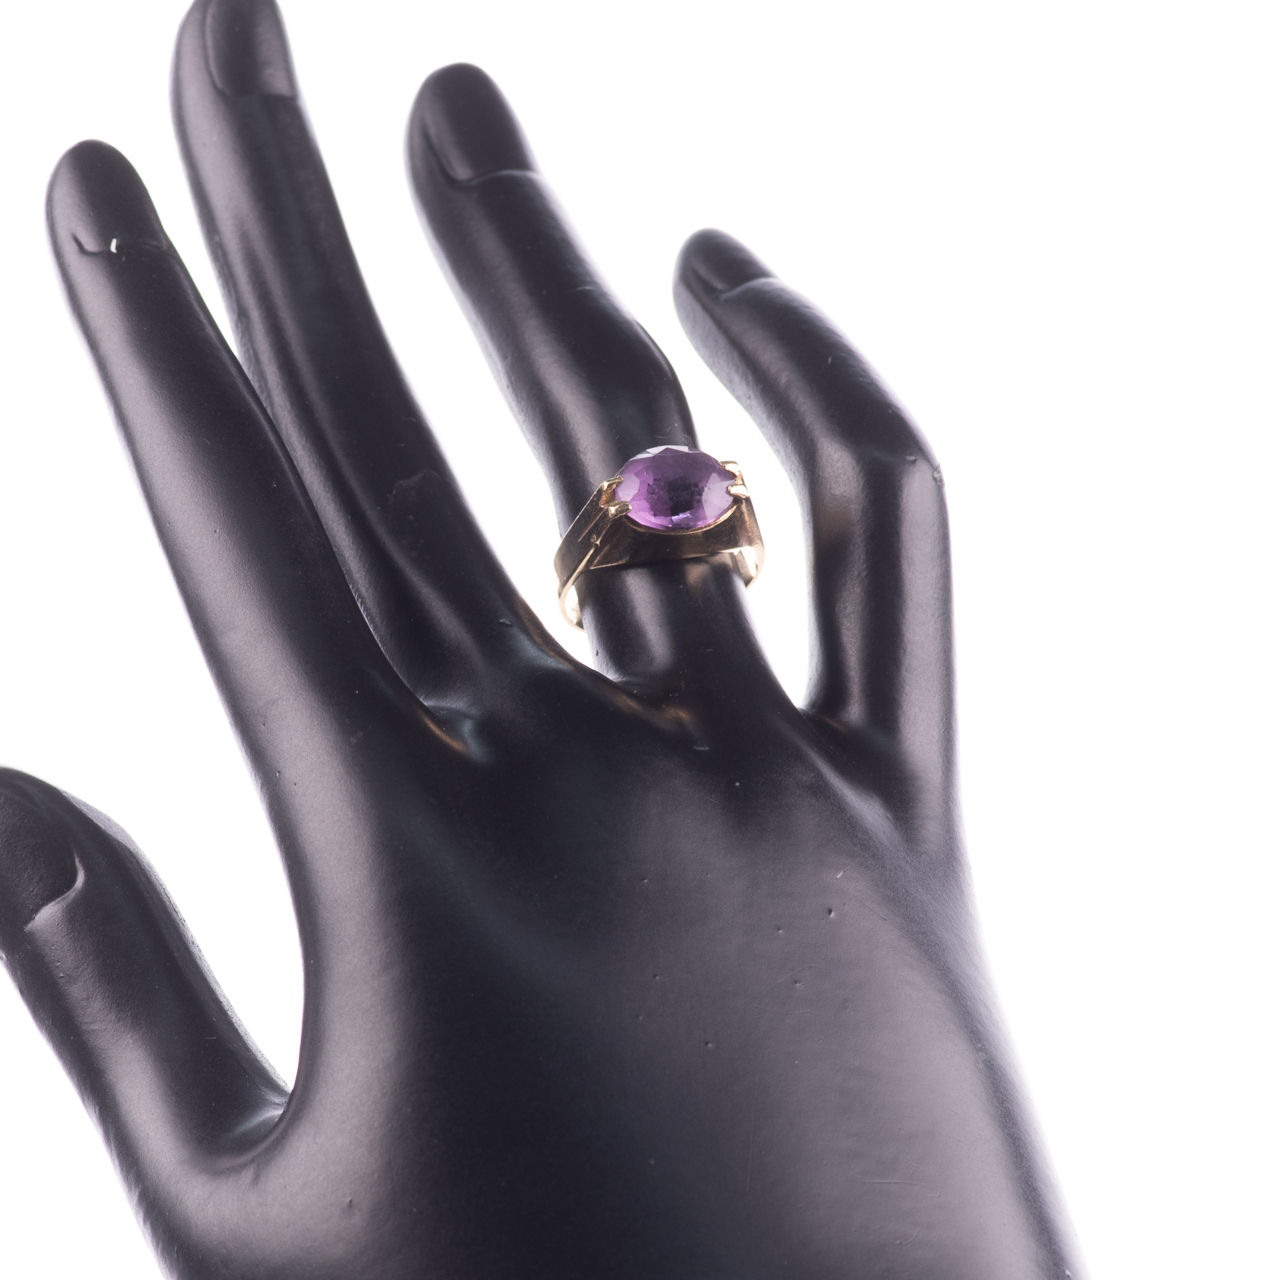 9ct Gold 3.20ct Amethyst Ring - Image 2 of 7